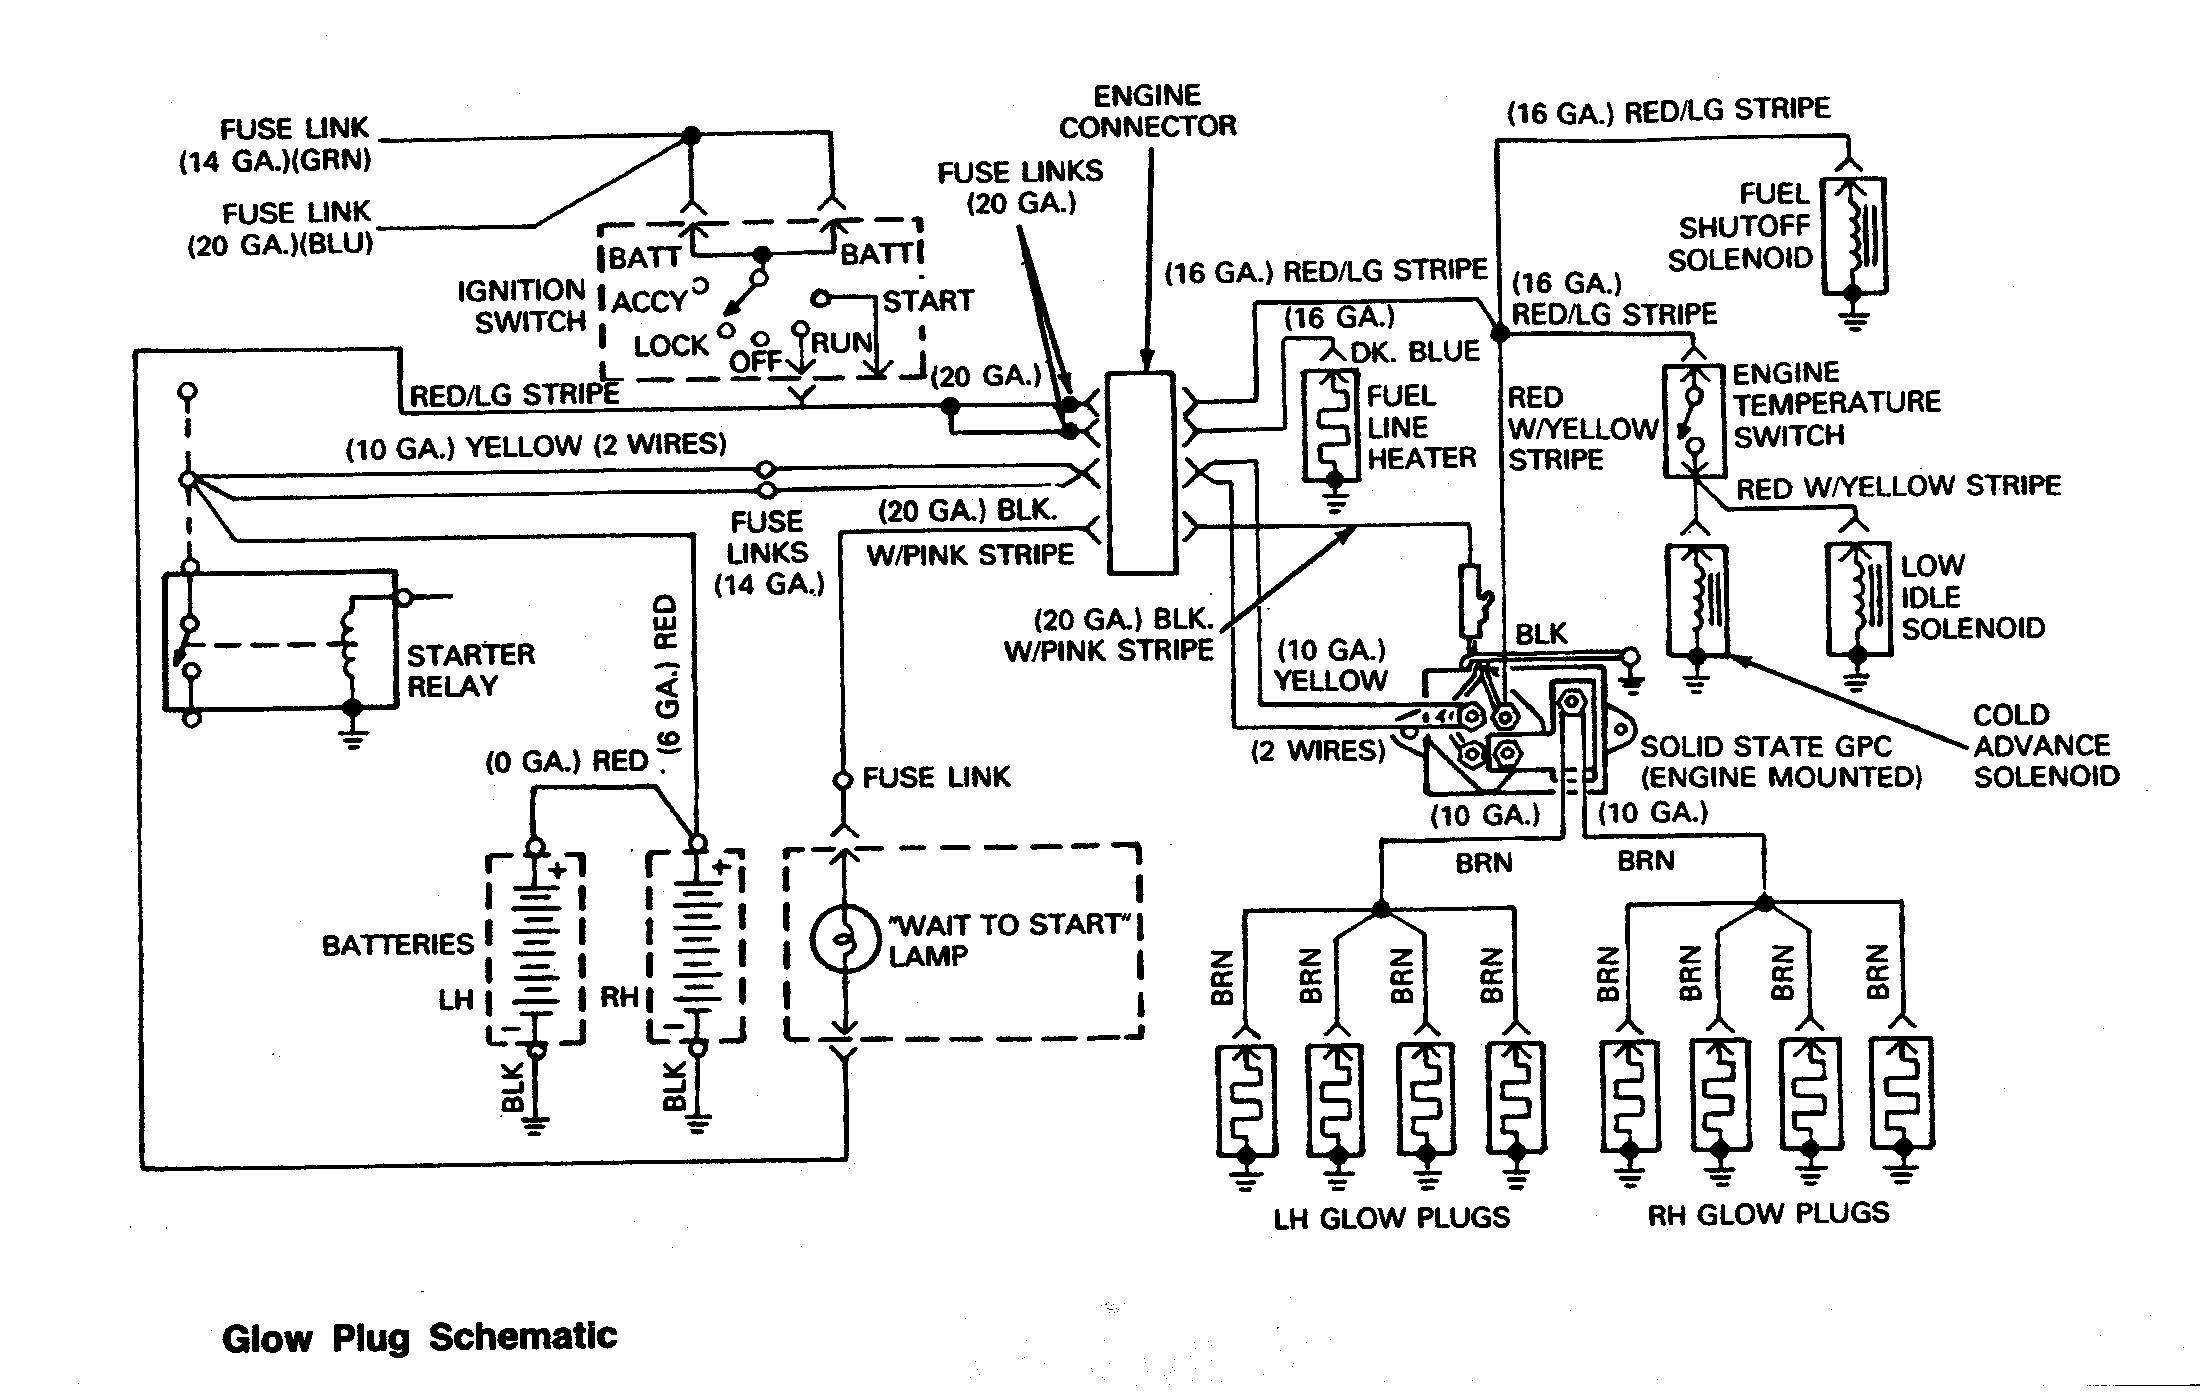 99 Vw Jetta Relay Diagram Wiring Will Be A Thing 1999 Volkswagen Engine And Jet Drive Fan Location